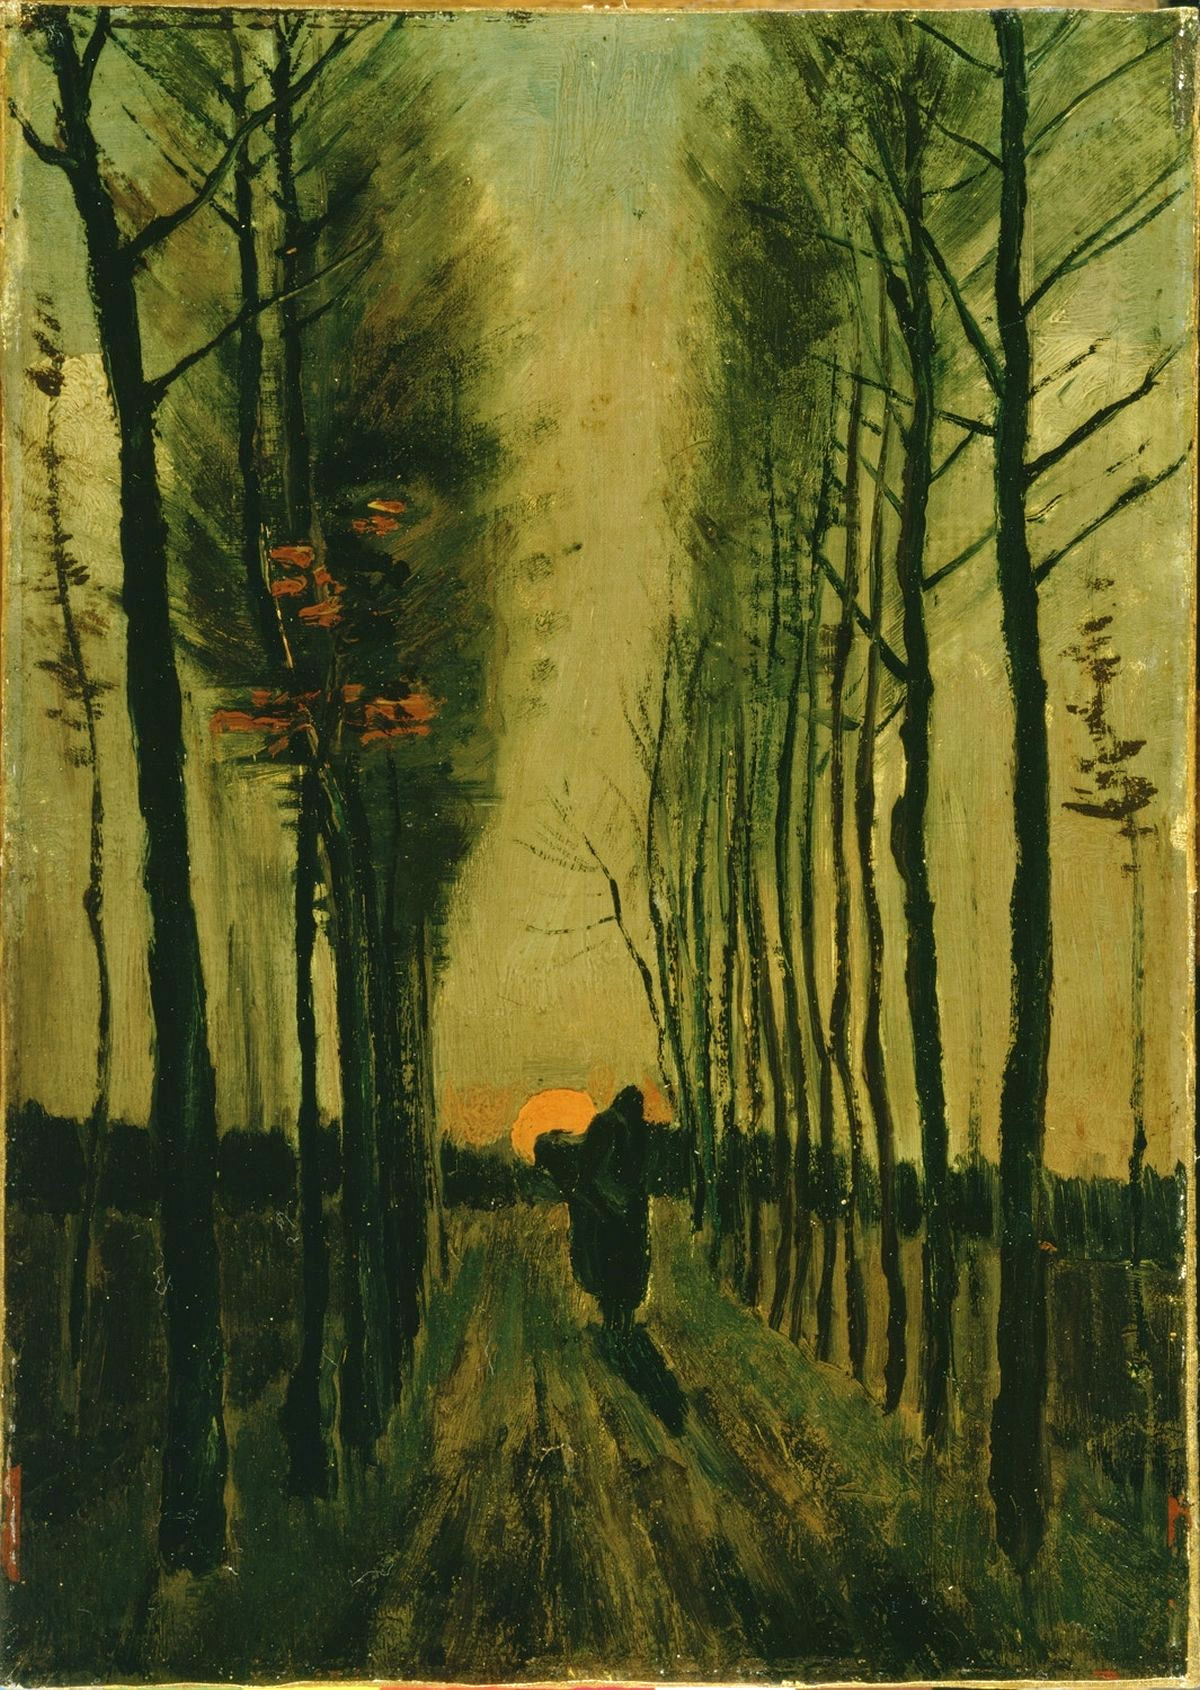 Avenue of Poplars at Sunset by Vincent van Gogh